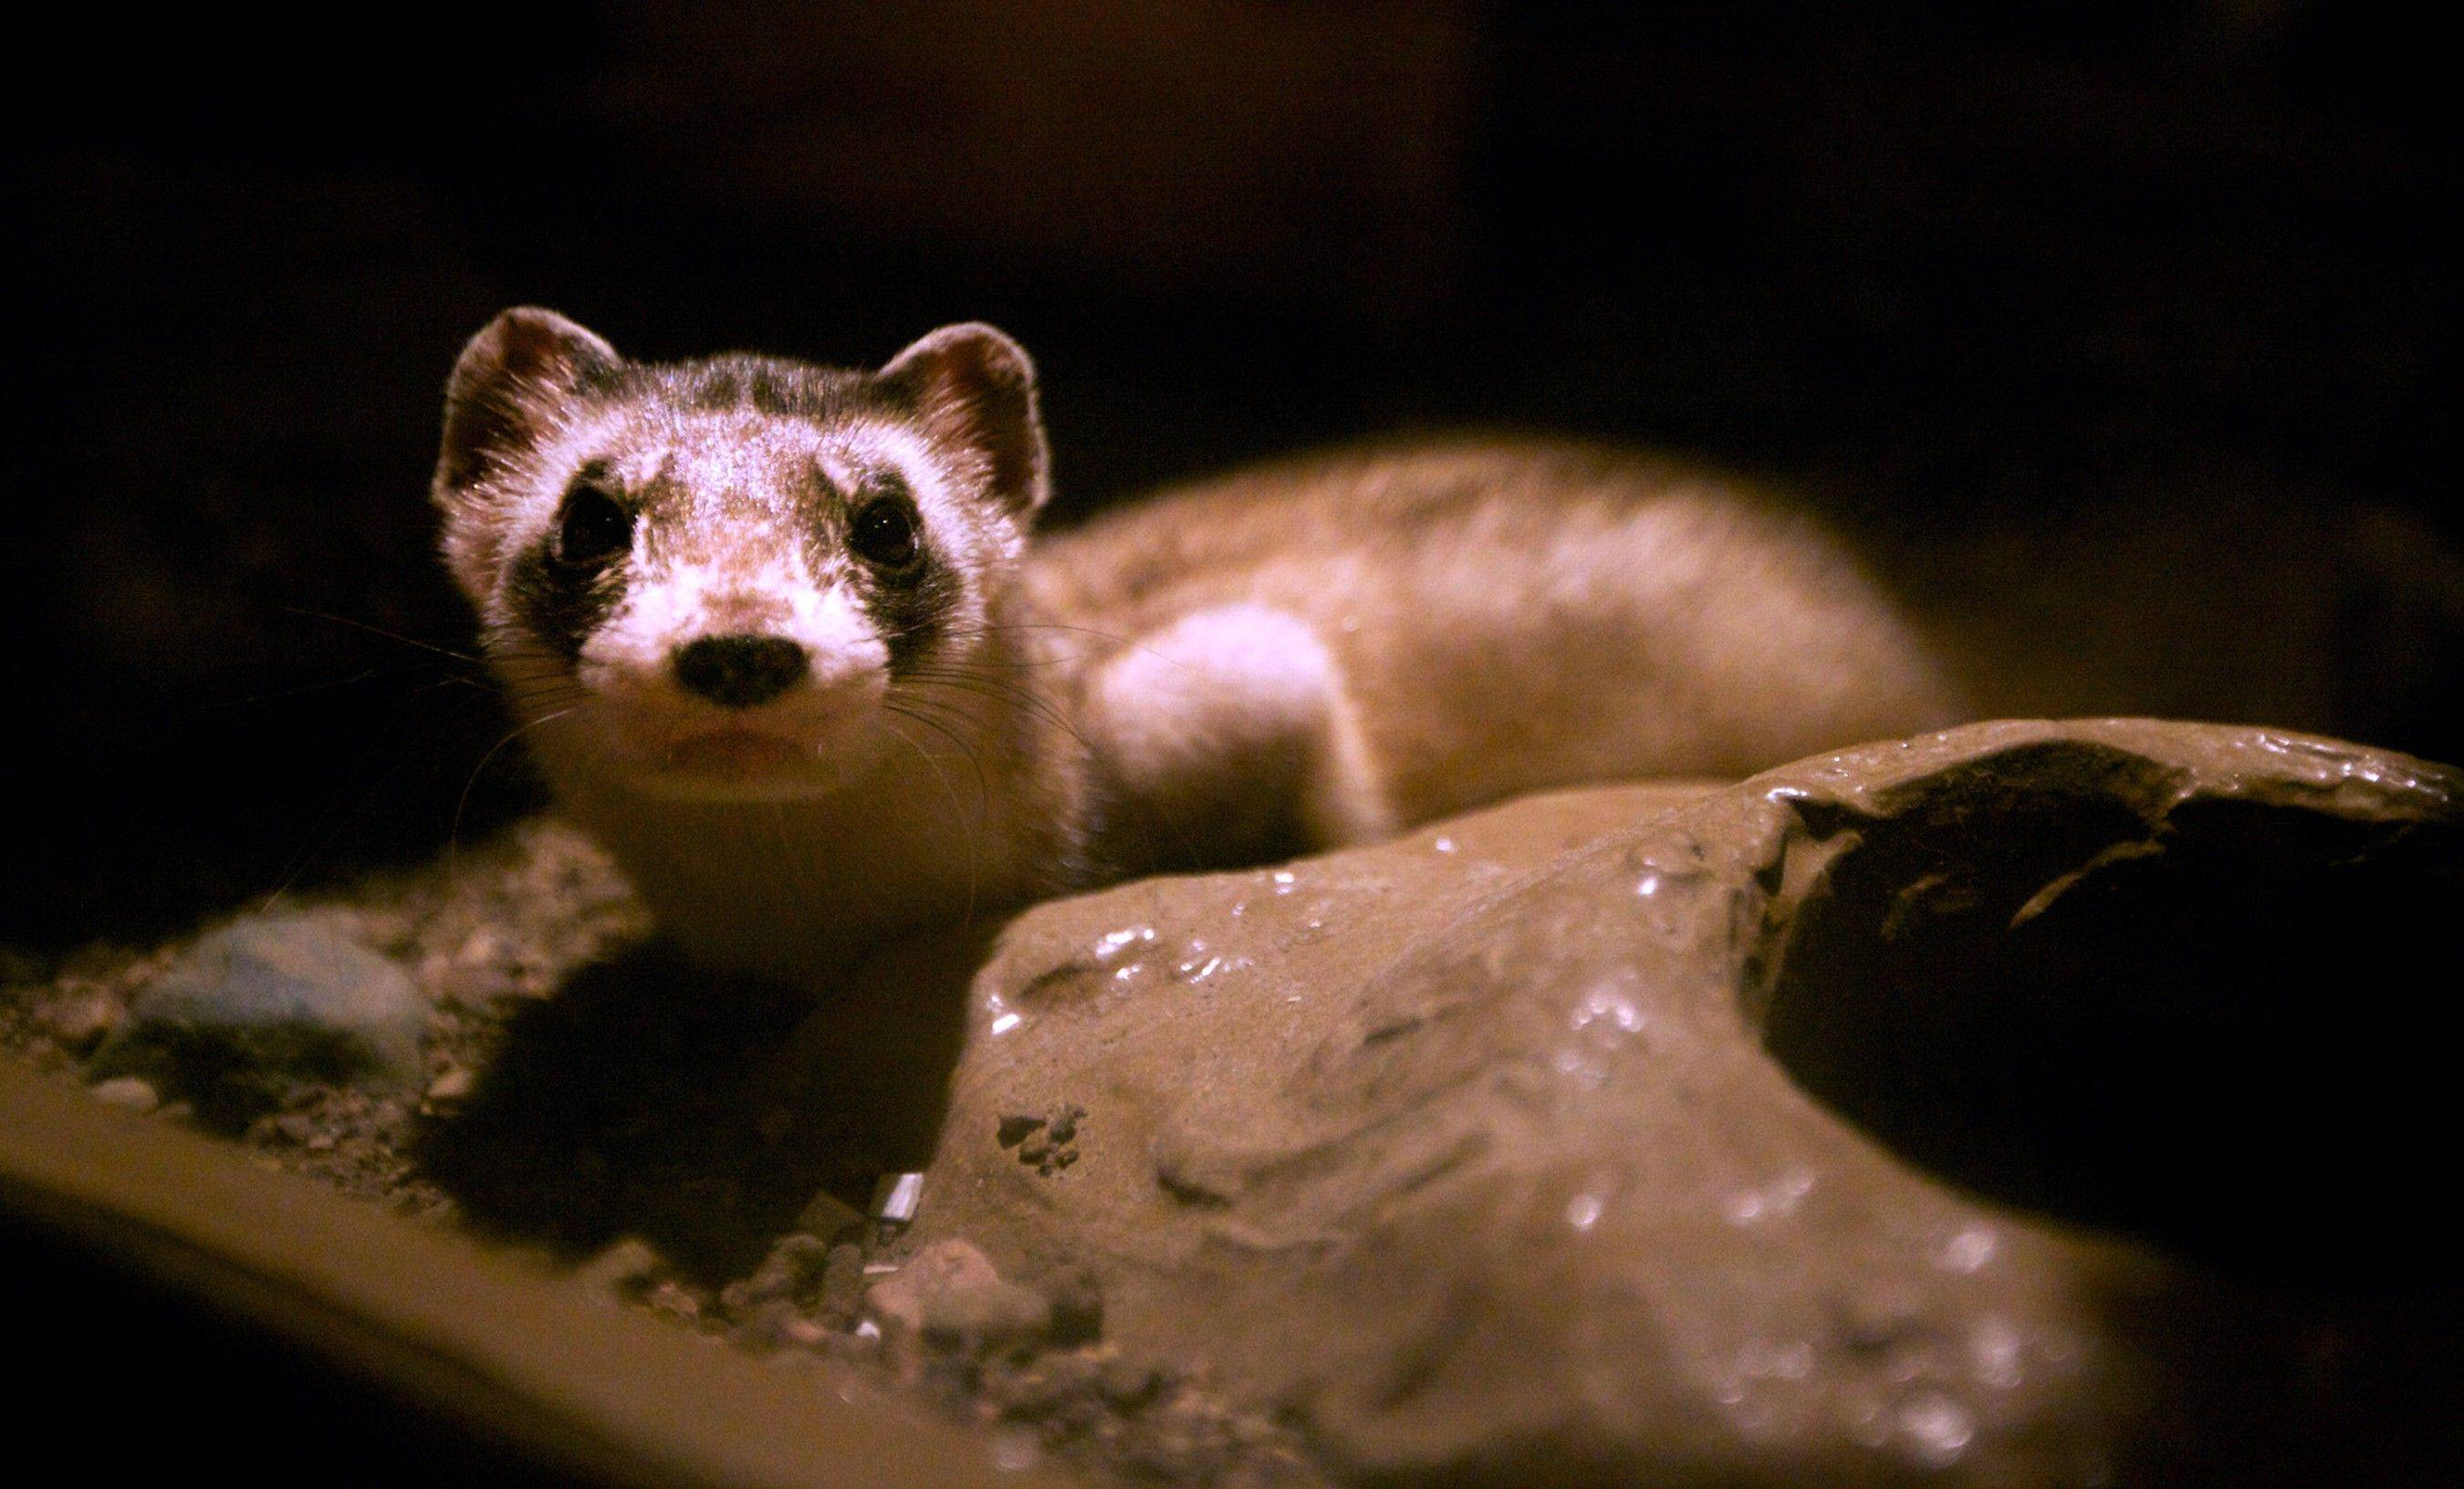 Mr. Brightside, named after a song by The Killers, sits in a display Saturday at the Ben Reifel Visitors Center at Badlands National Park in Interior, S.D. He is one of about 300 endangered black-footed ferrets kept in captivity for mating purposes.